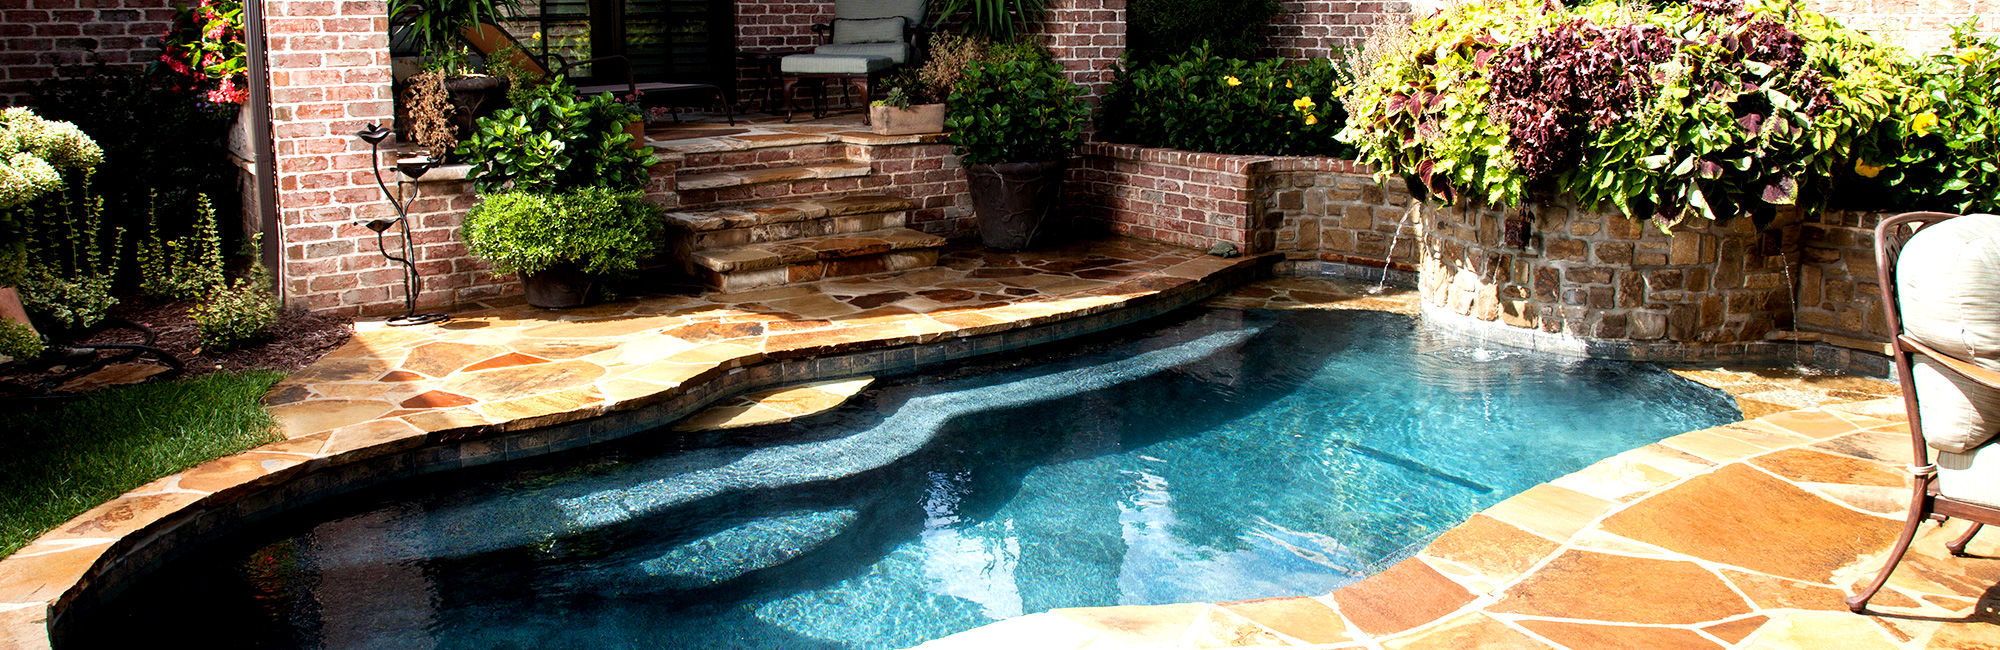 L m custom pools spa wichita ks - American swimming pool and spa association ...